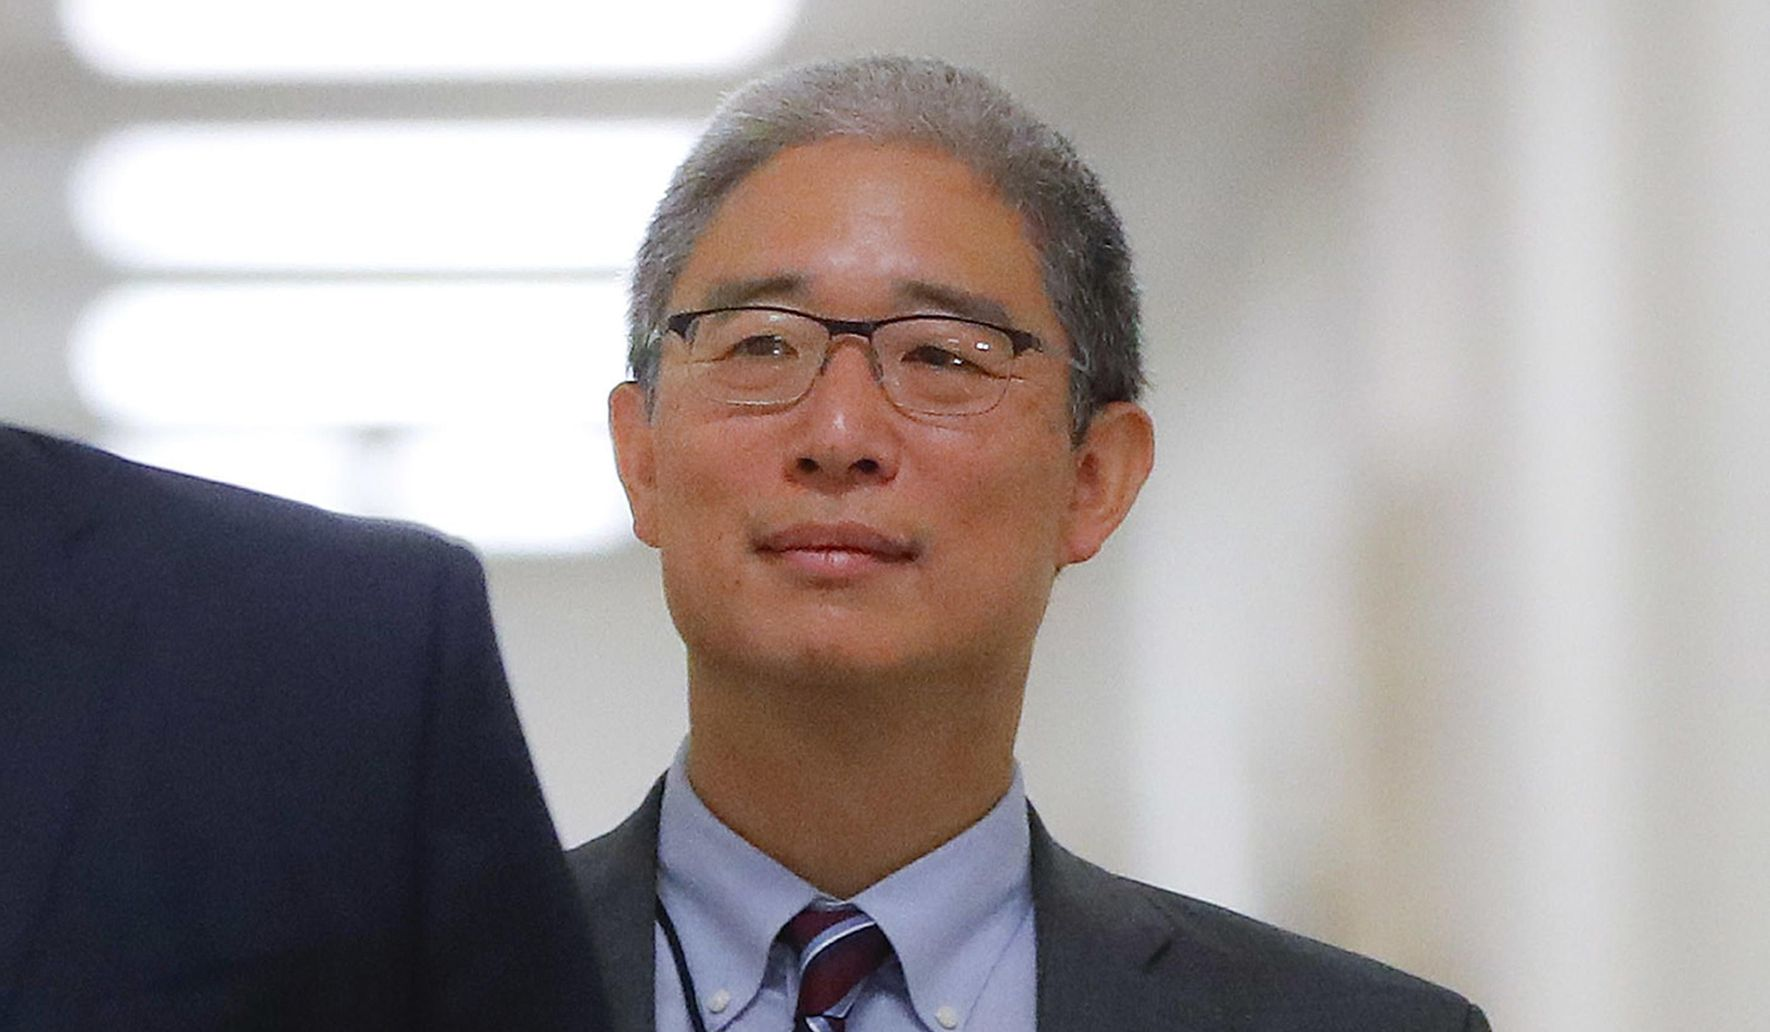 'Duty as a citizen': Bruce Ohr concealed efforts to spread Steele dossier